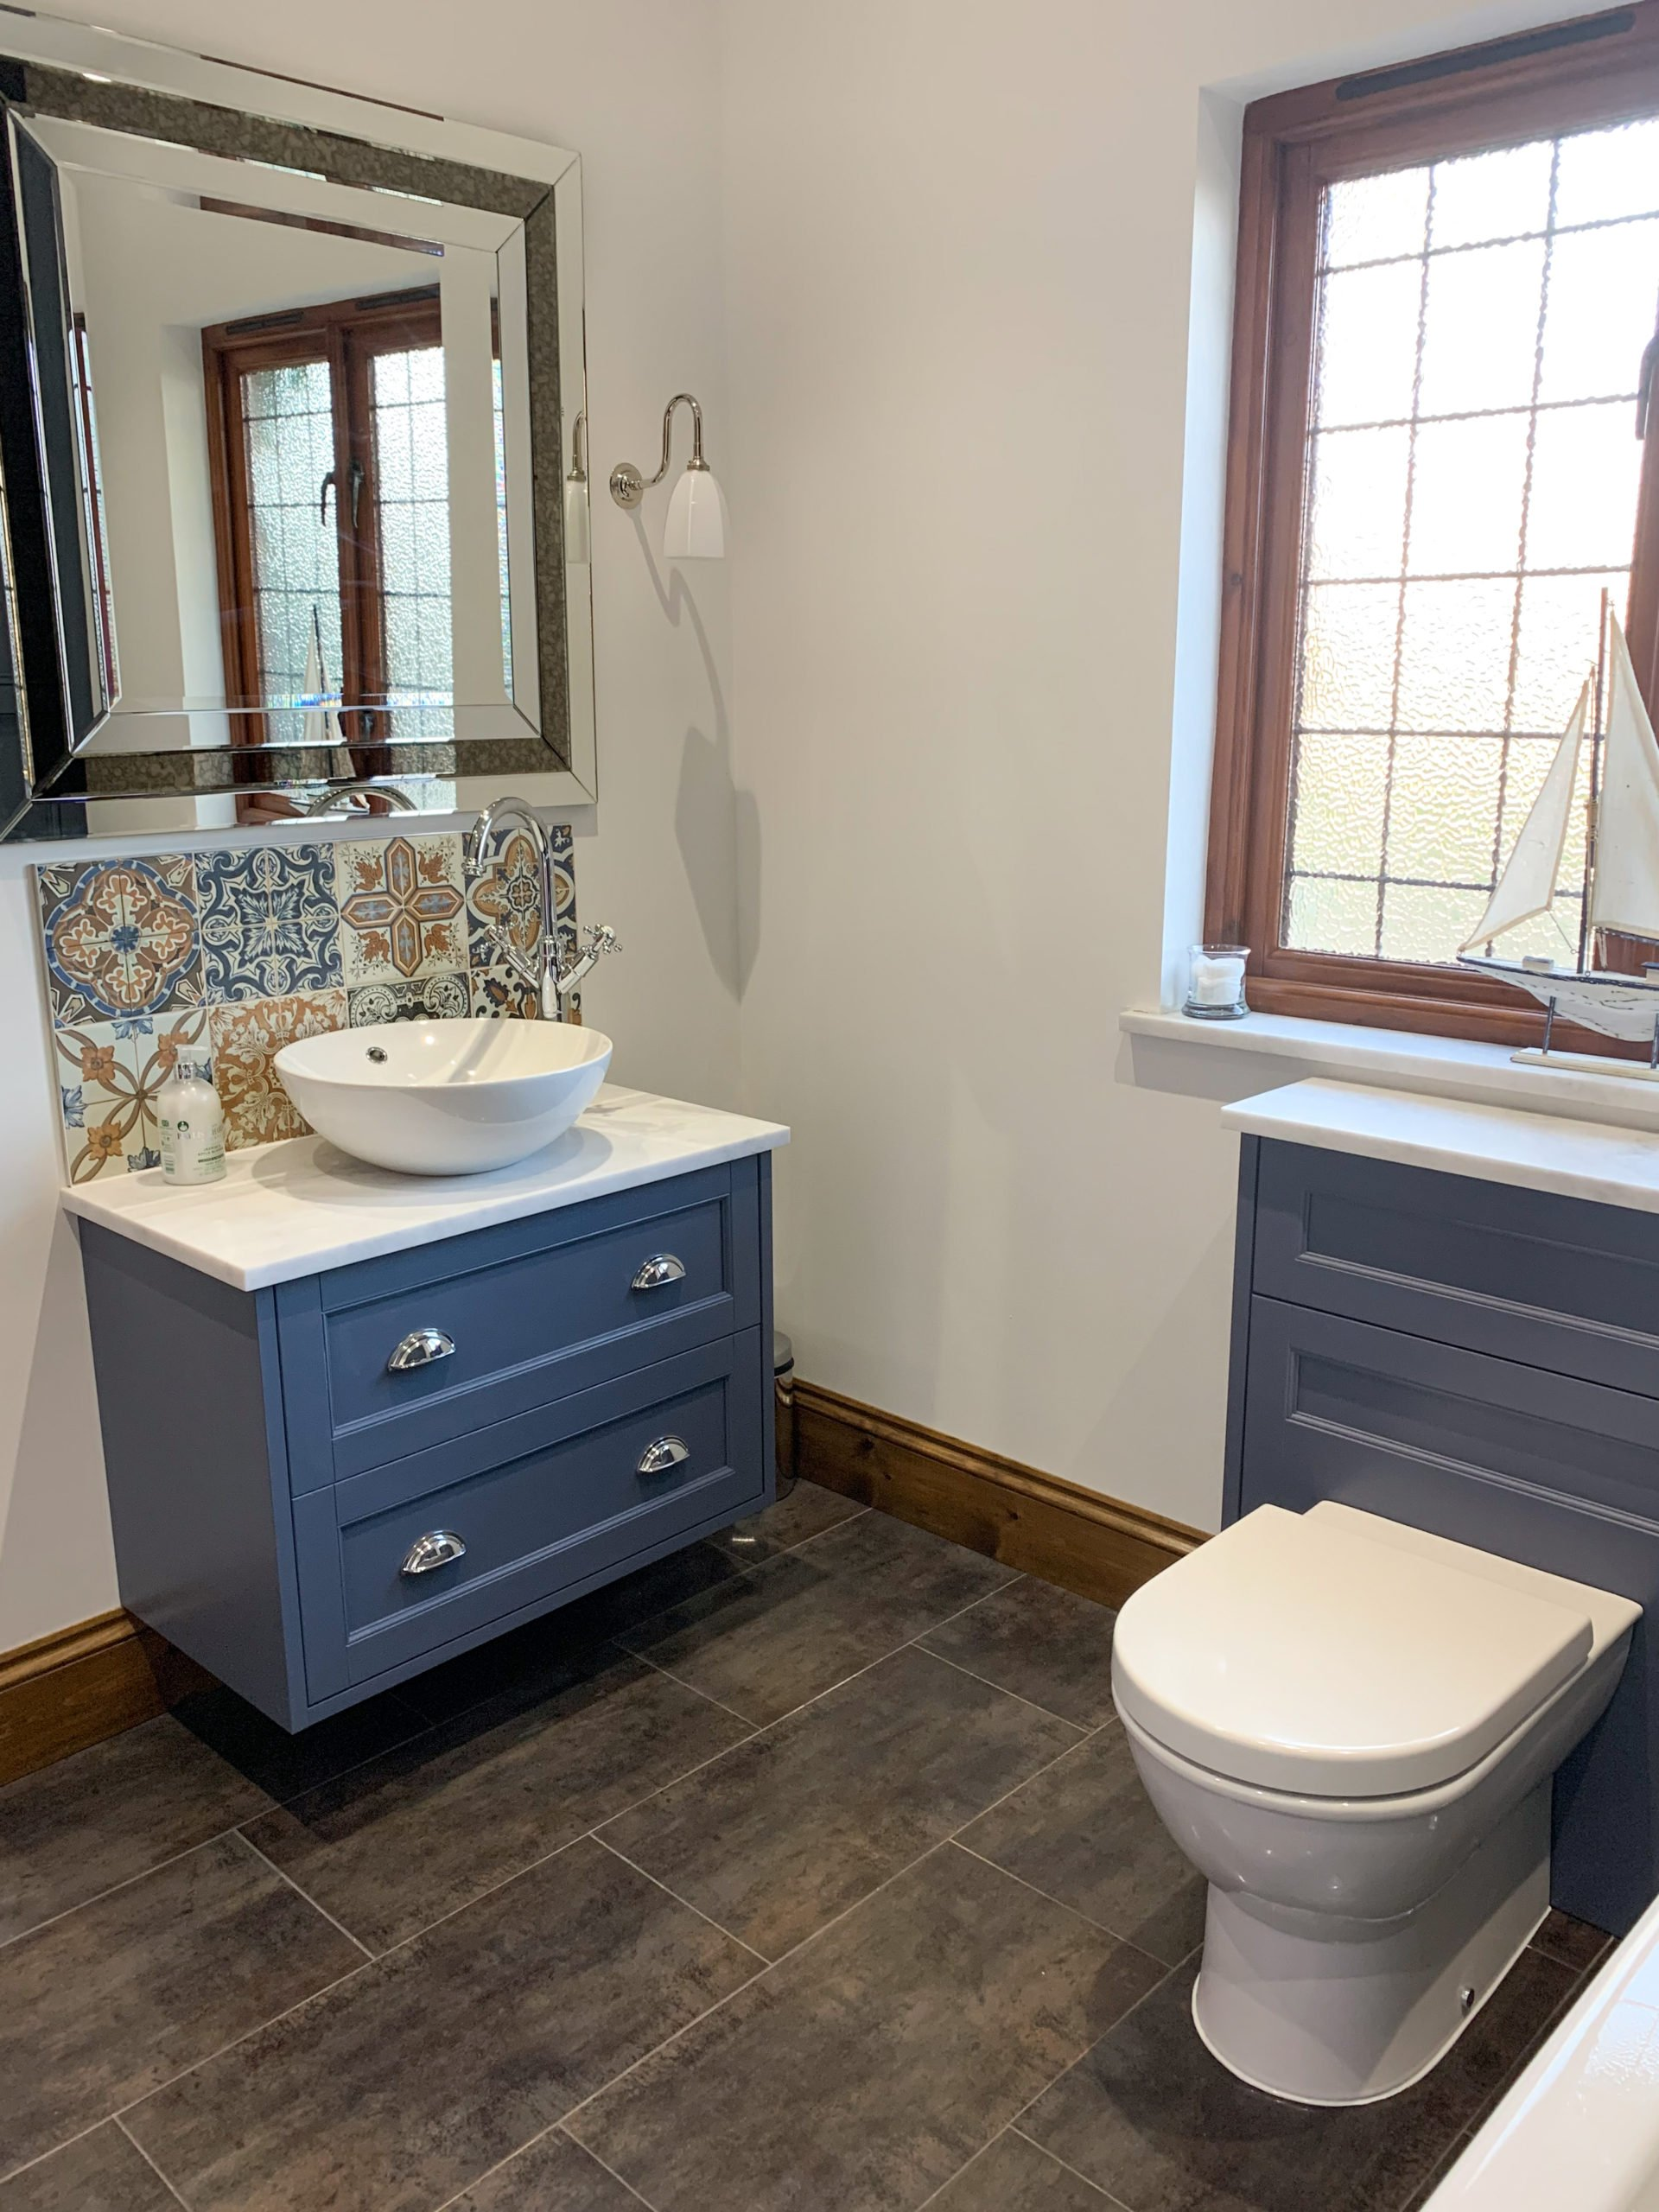 Traditional looking family bathroom